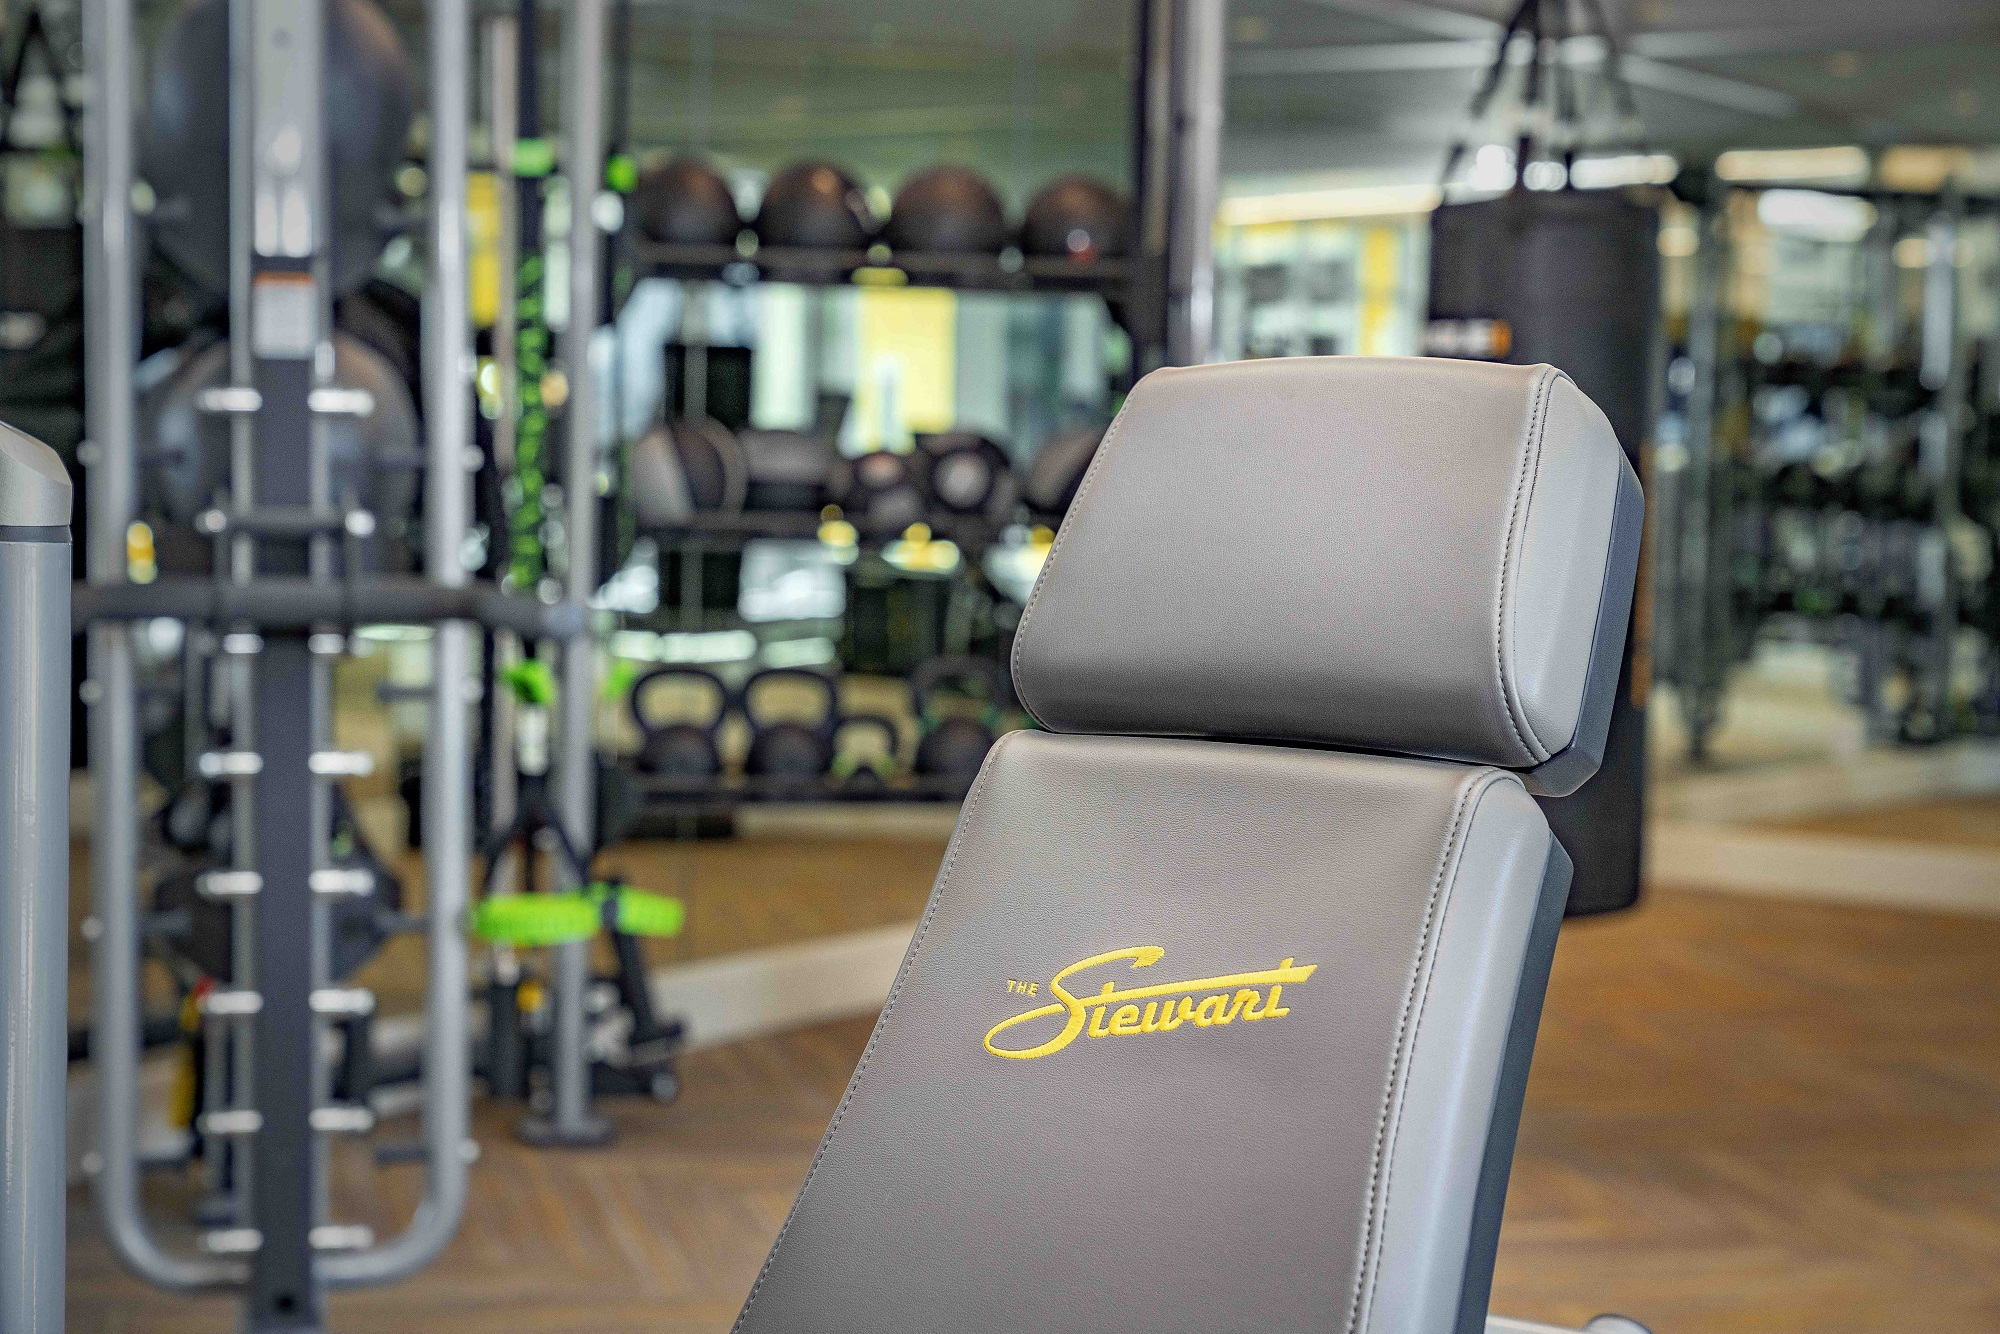 The Stewart fitness center with equipment